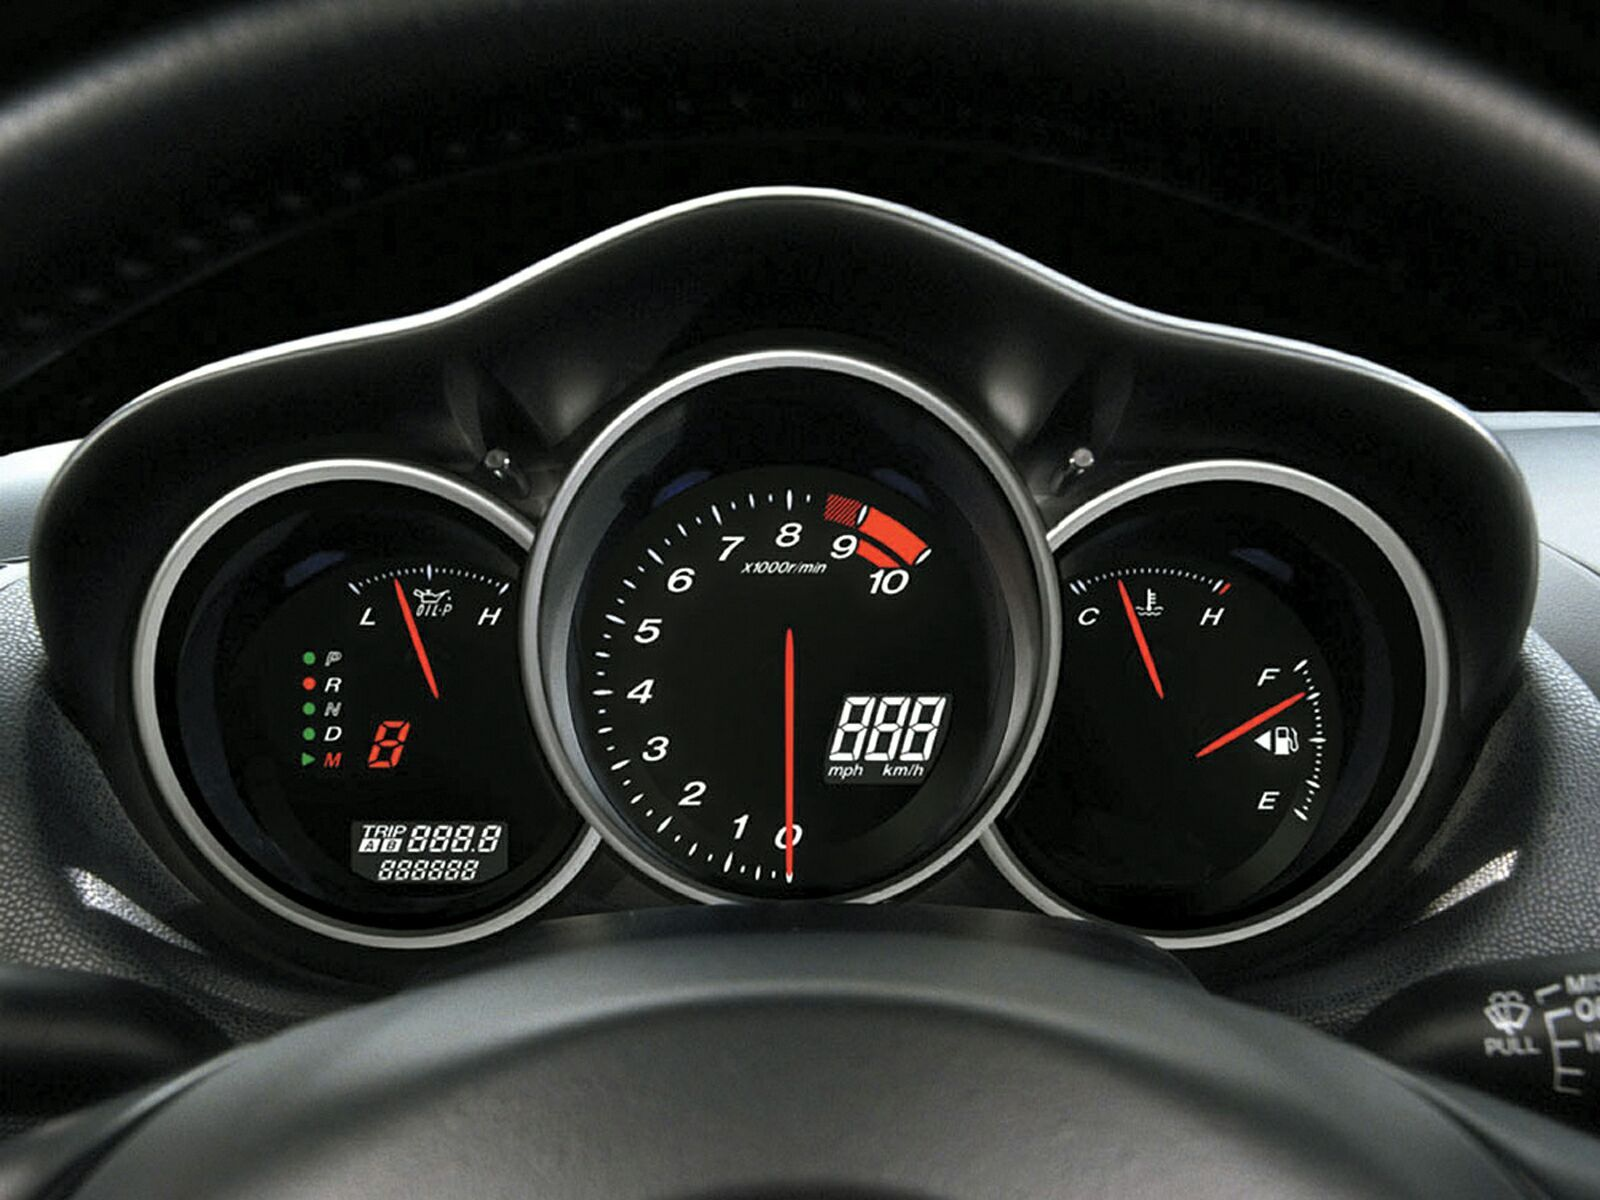 2005 Mazda RX-8 | Top Speed